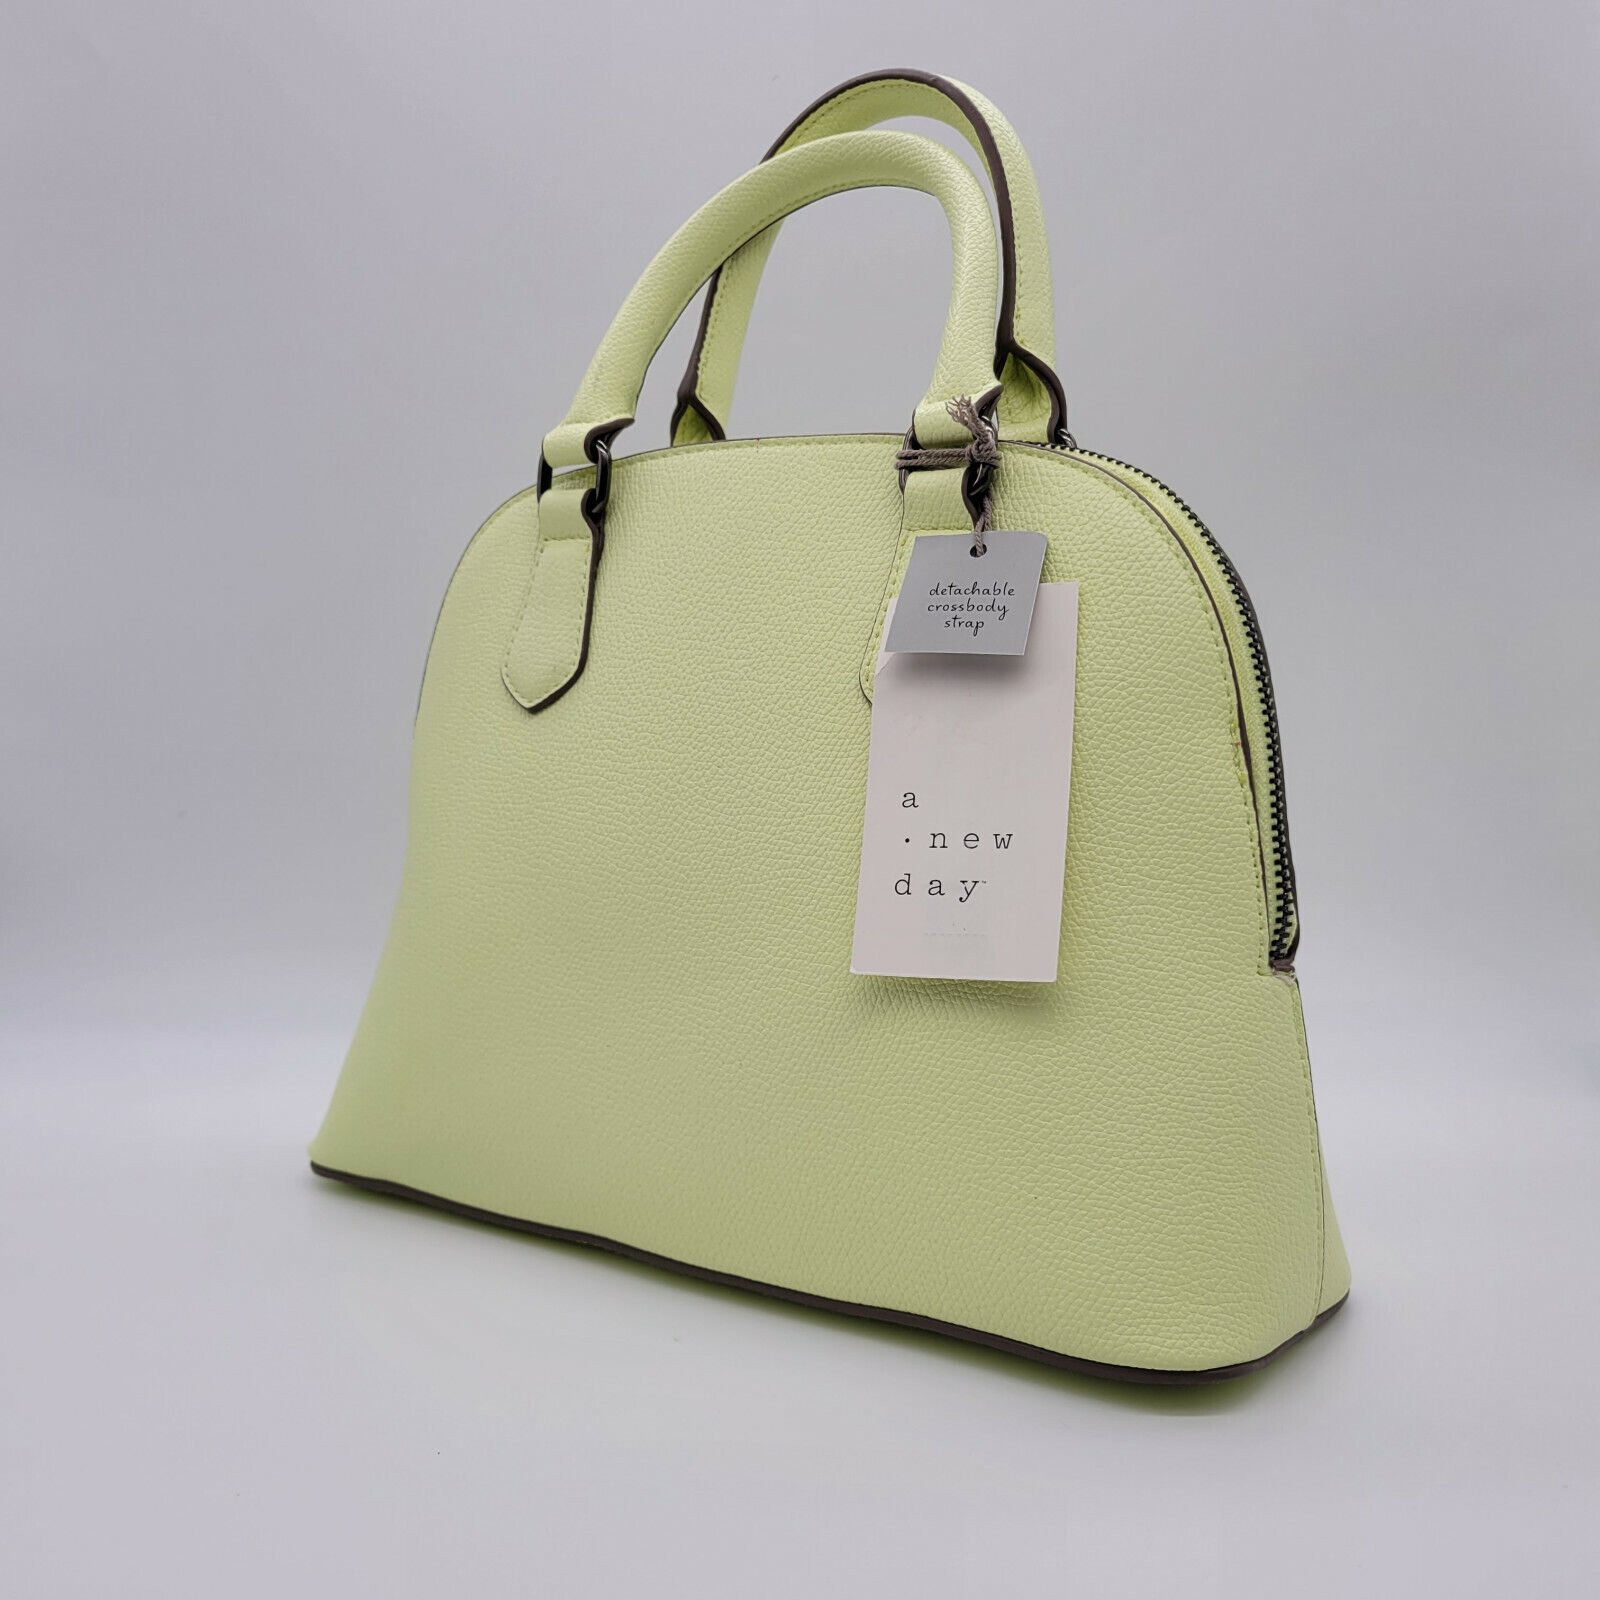 WOMEN'S SMALL DOME SATCHEL HAND BAG - A NEW DAY CITRUS GREEN